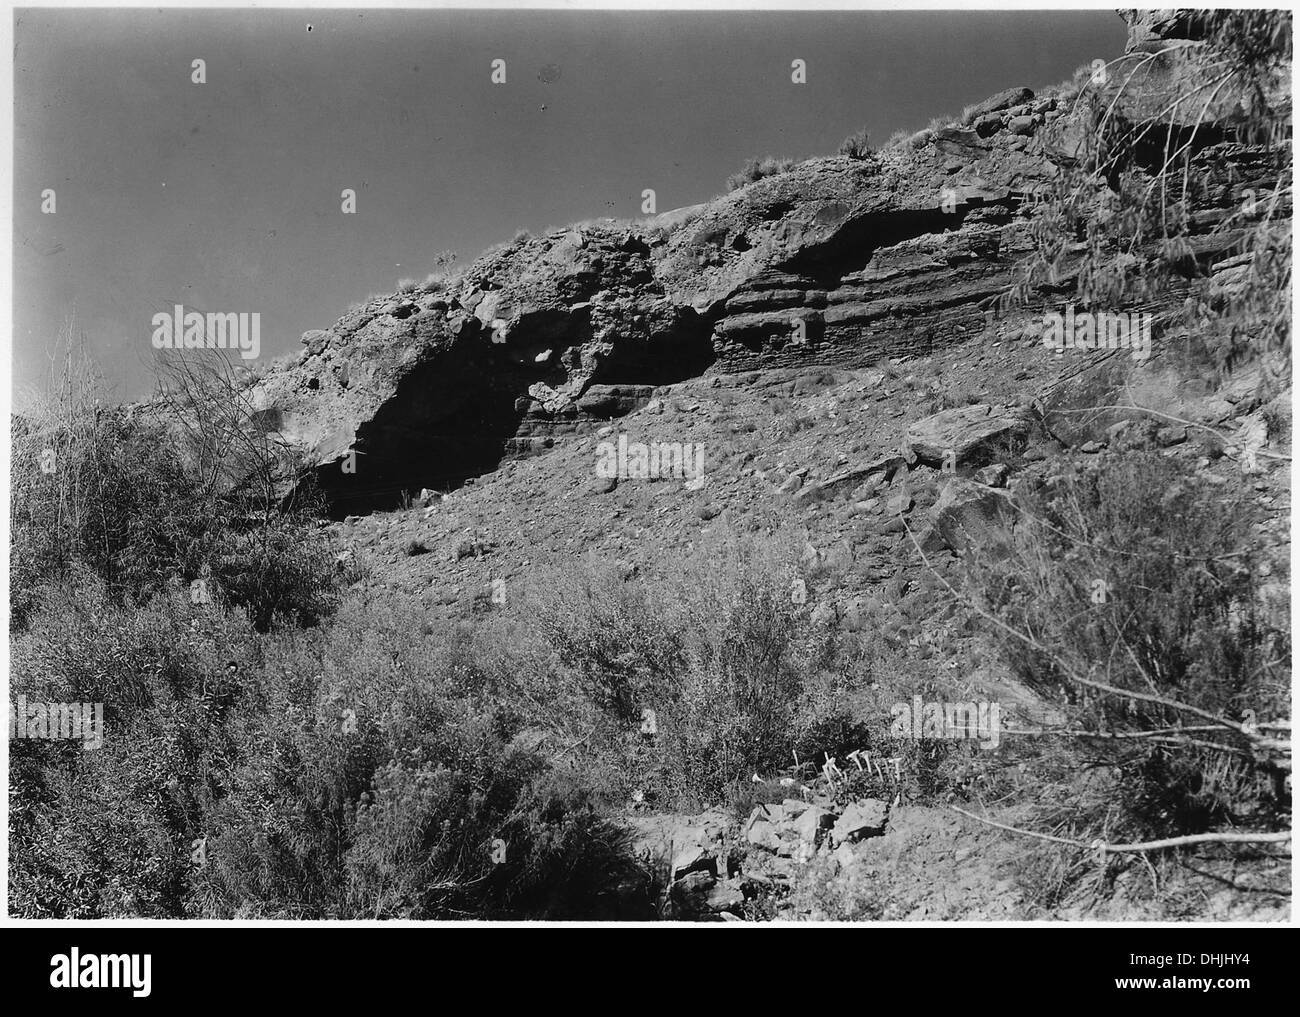 Unconformity at forks of the Virgin River near Rockville, Utah. Conglomerate overlying edges of shale strata. 520426 - Stock Image